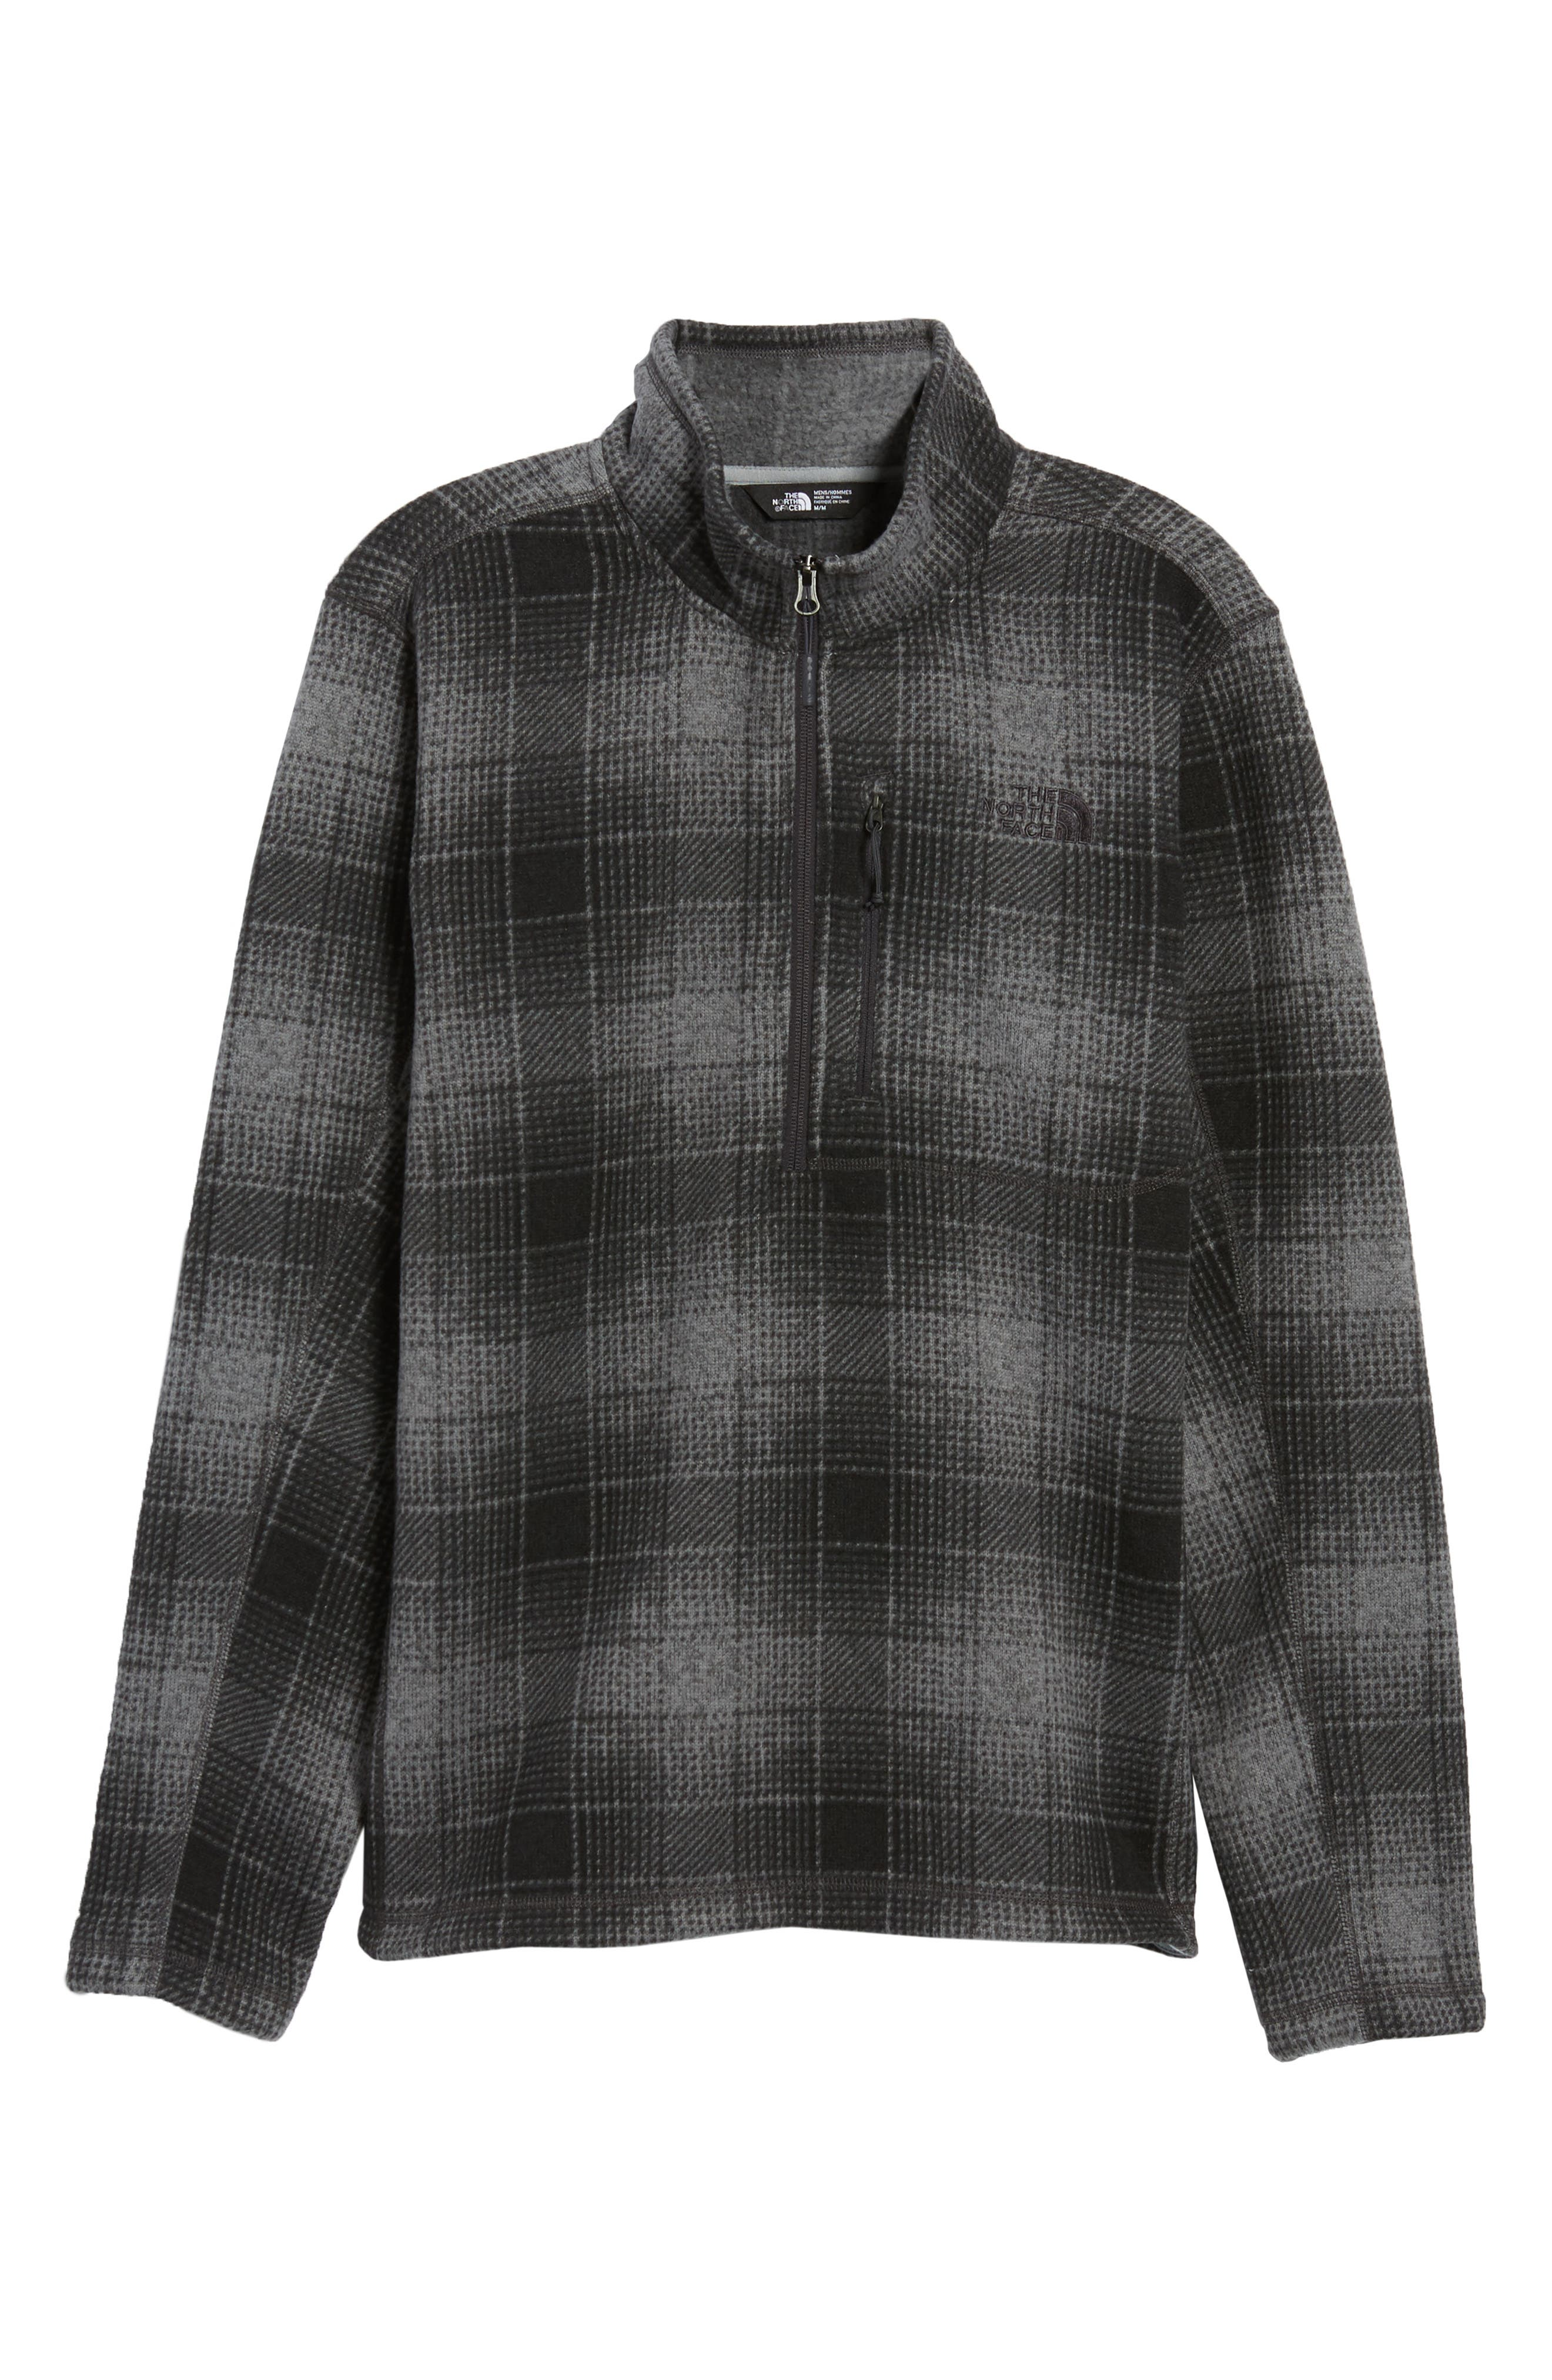 Novelty Gordon Lyons Plaid Pullover,                             Alternate thumbnail 6, color,                             MONUMENT GREY OMBRE PLAID